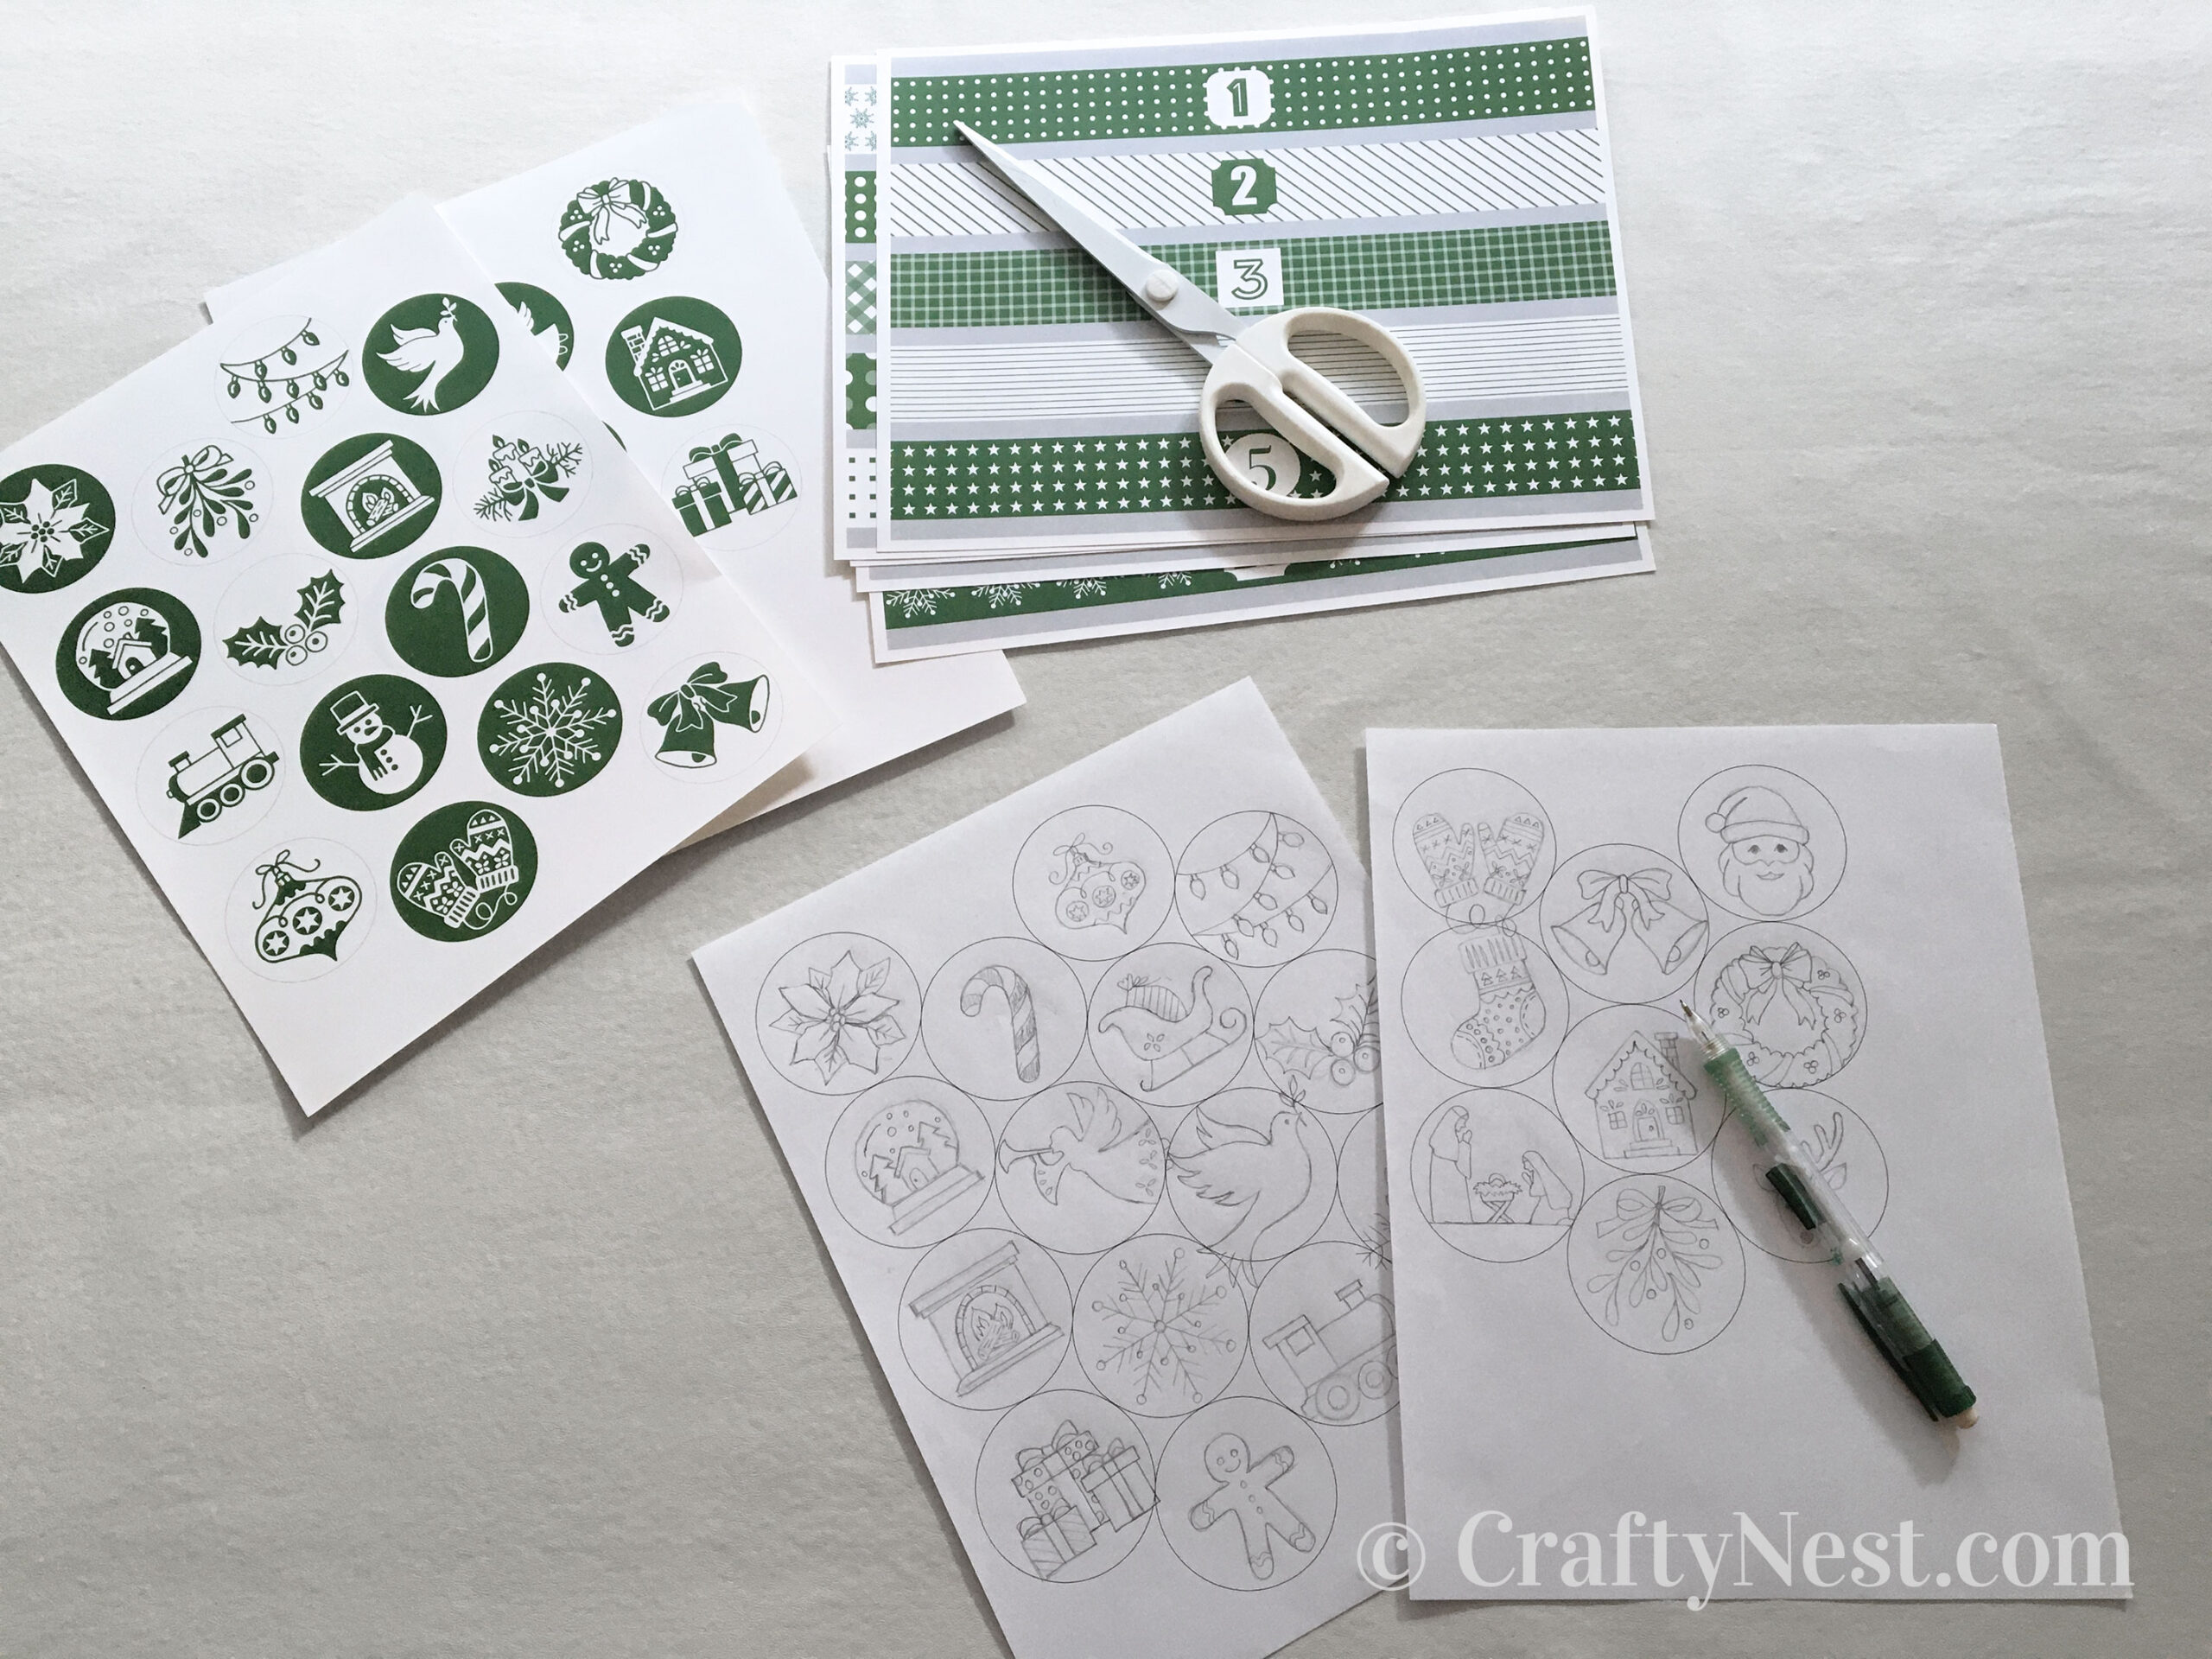 Ornament and tin labels printed out, photo